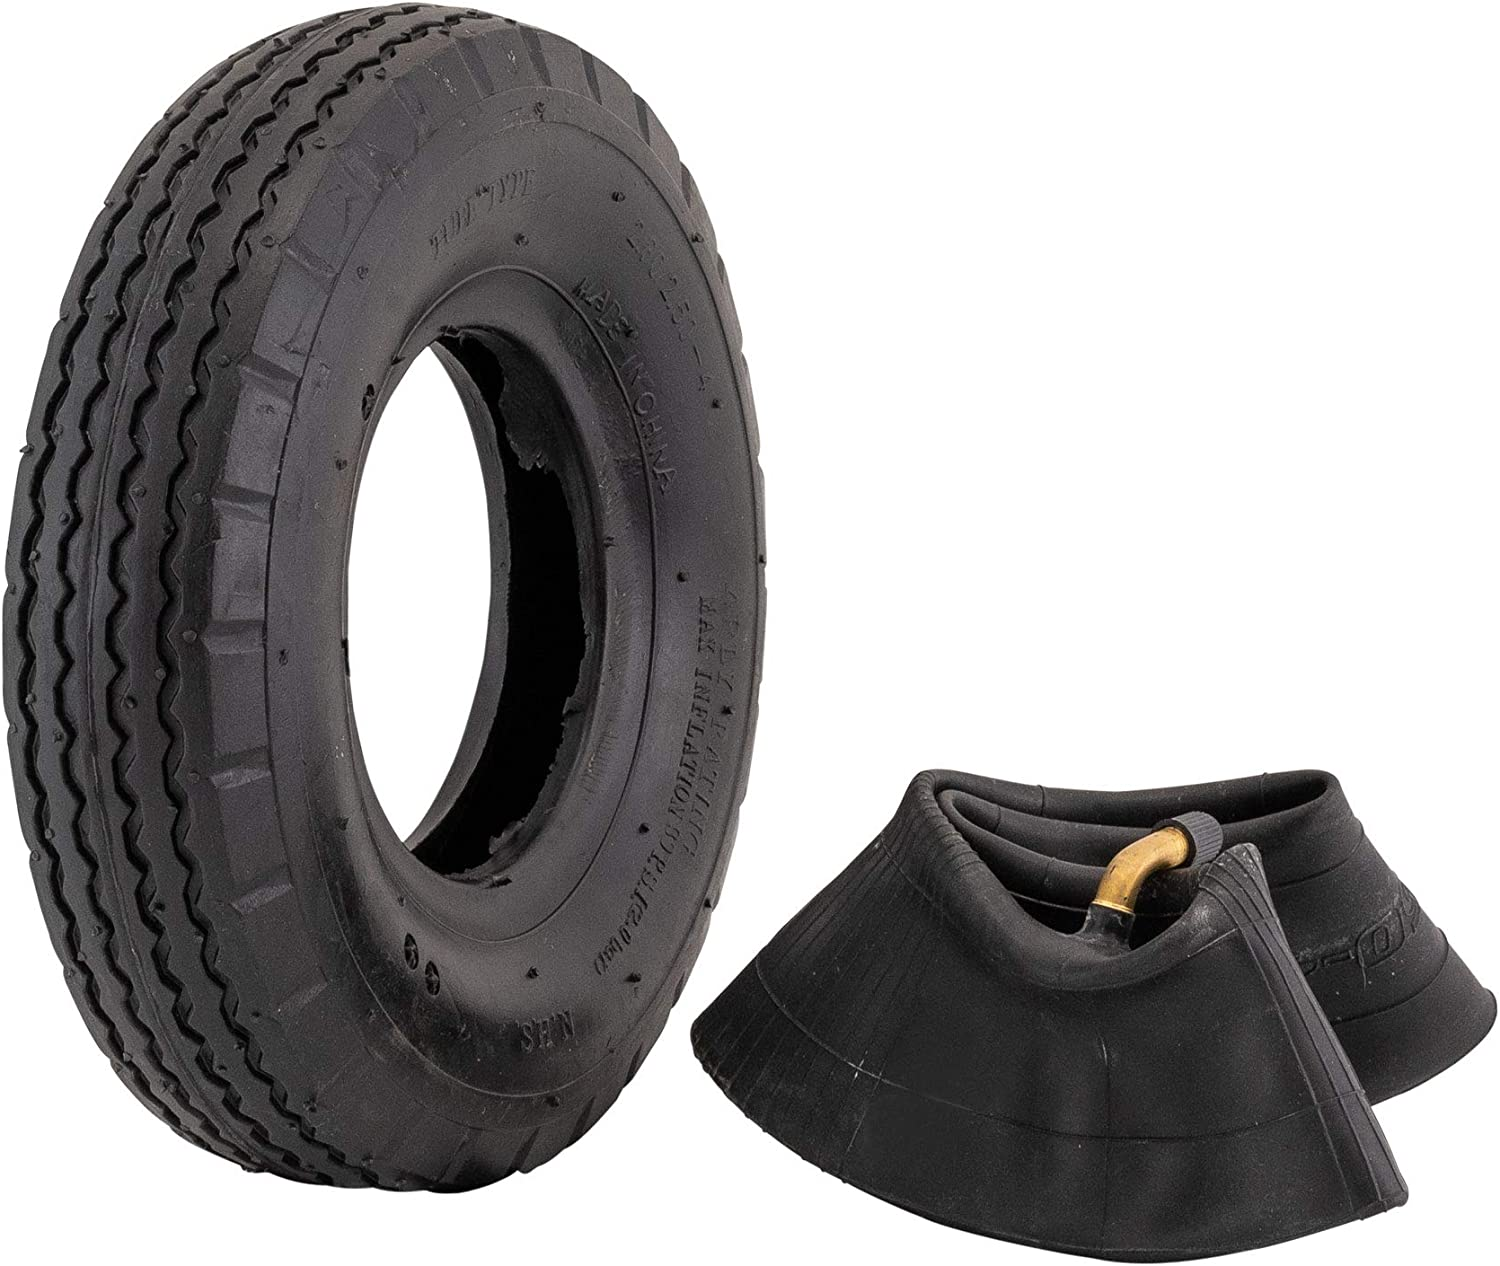 1x//4x 4.10//3.50-4 Inner Tube Tire For Pneumatic Trolley Wheel Bent Valve Air Set